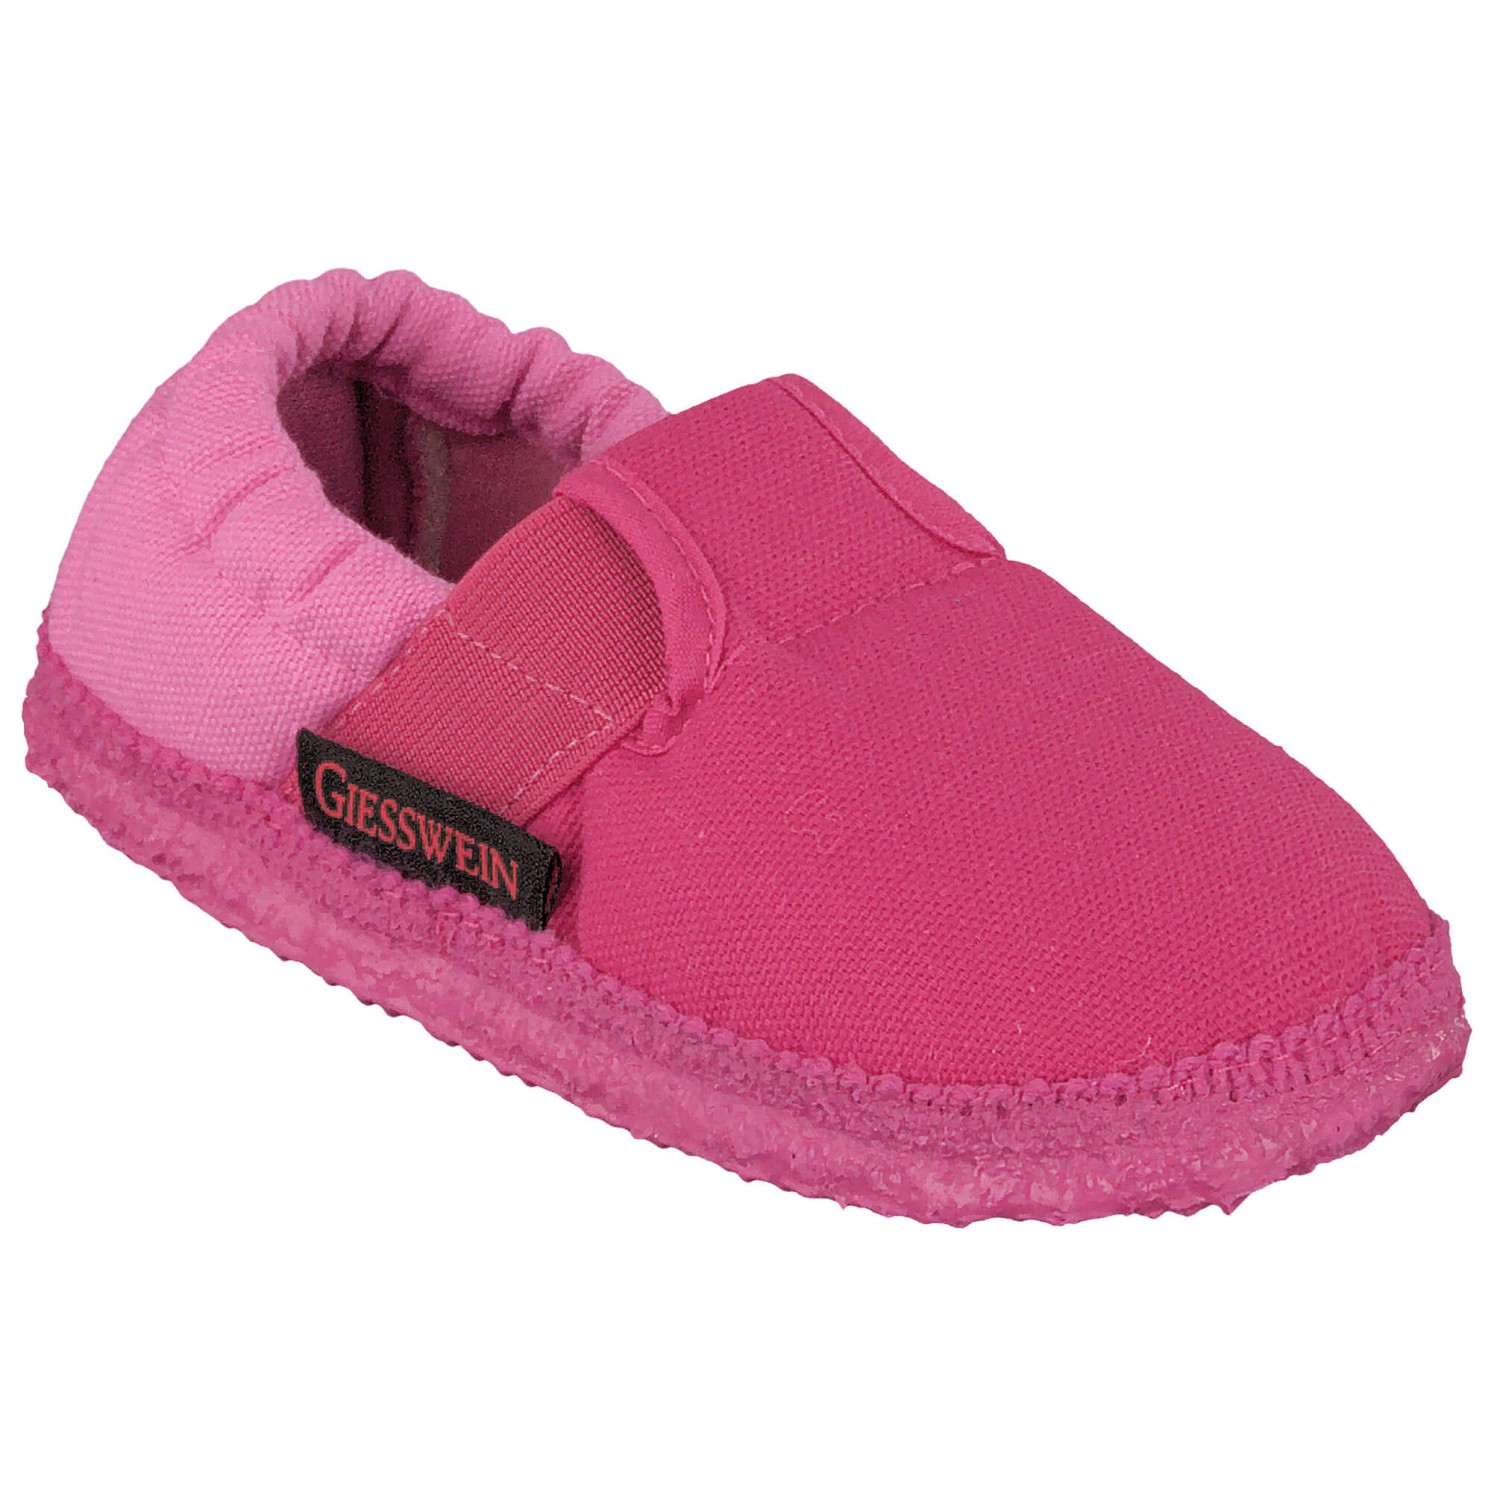 Check out the latest range of Kids shoes: Sneakers, Flats, Sandals, Bellies, Flip-Flops, Boots, Sports Shoes in hue of colors. Best offers Top Brands fast shipping.